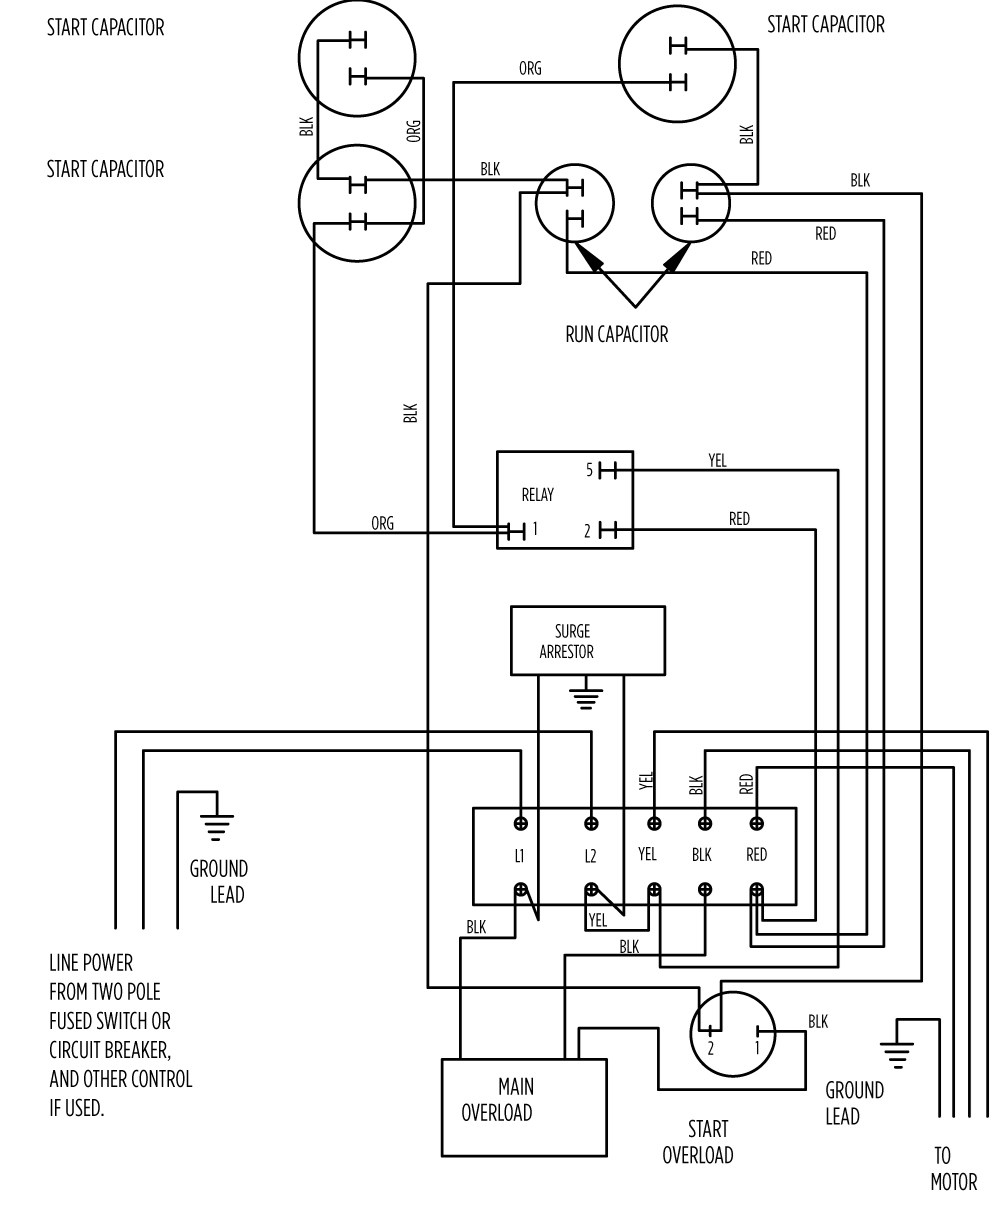 hight resolution of franklin electric motor wiring diagram wiring diagram mega franklin motor wiring diagram wiring diagram show franklin